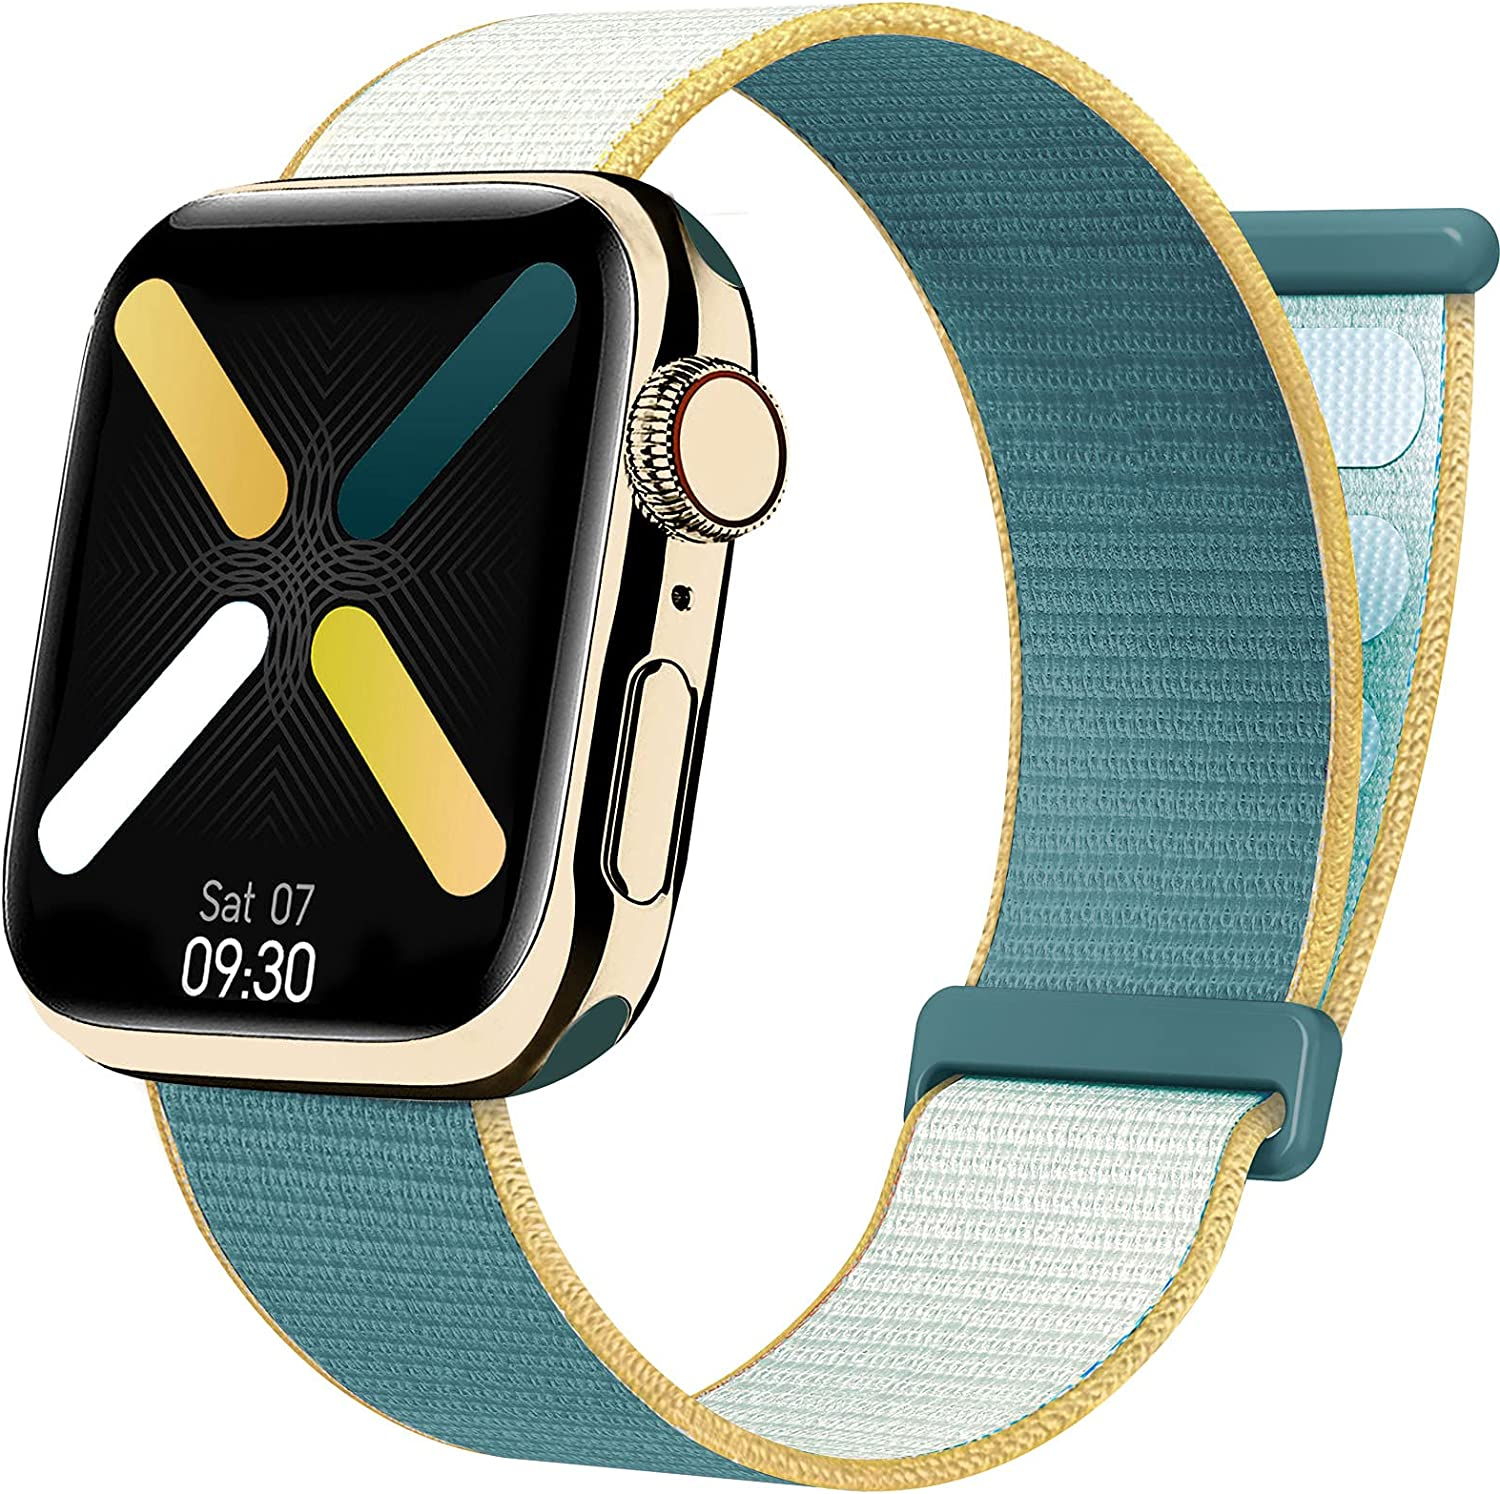 Velcro Nylon Band Compatible with Apple Watch Band Series SE/6 38/40/42/44mm, Adjustable Sport Loop Woven Stretchy Strap Braided Elastics for Women/Men Compatible with iWatch Series 5/4/3/2/1